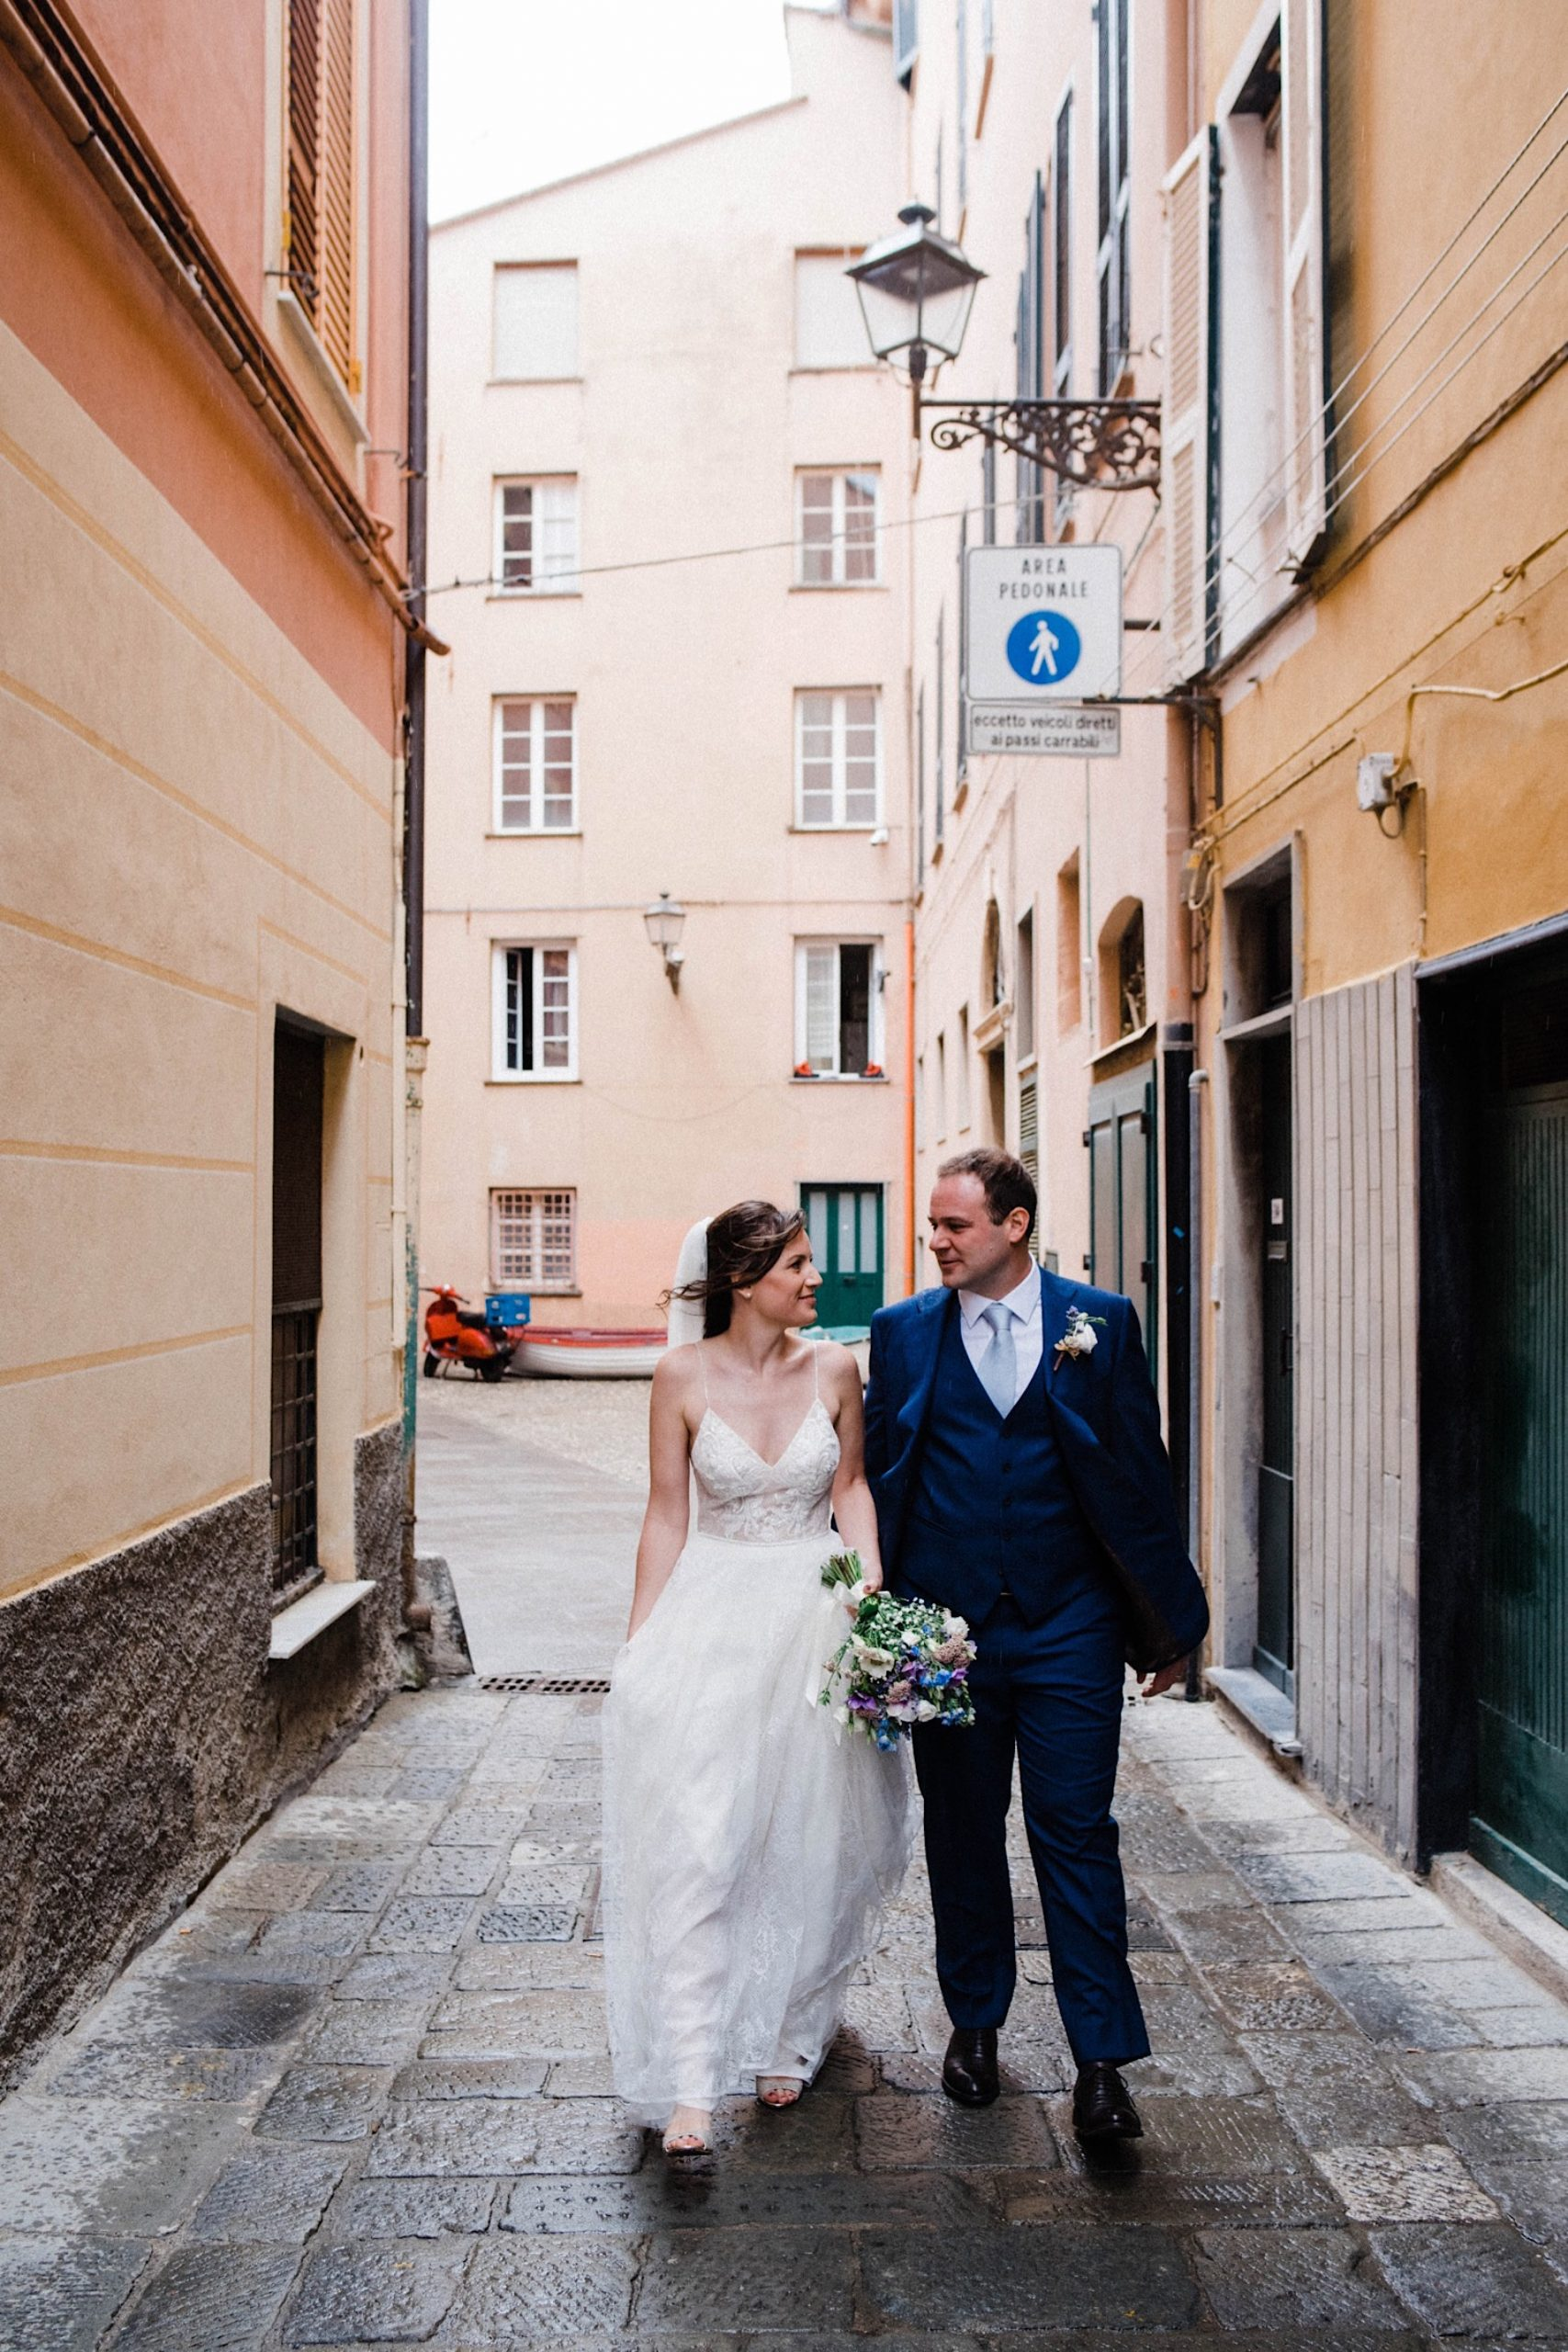 Italian Riviera Destination Photography of the bride & groom walking down the street together in Sestri Levante.